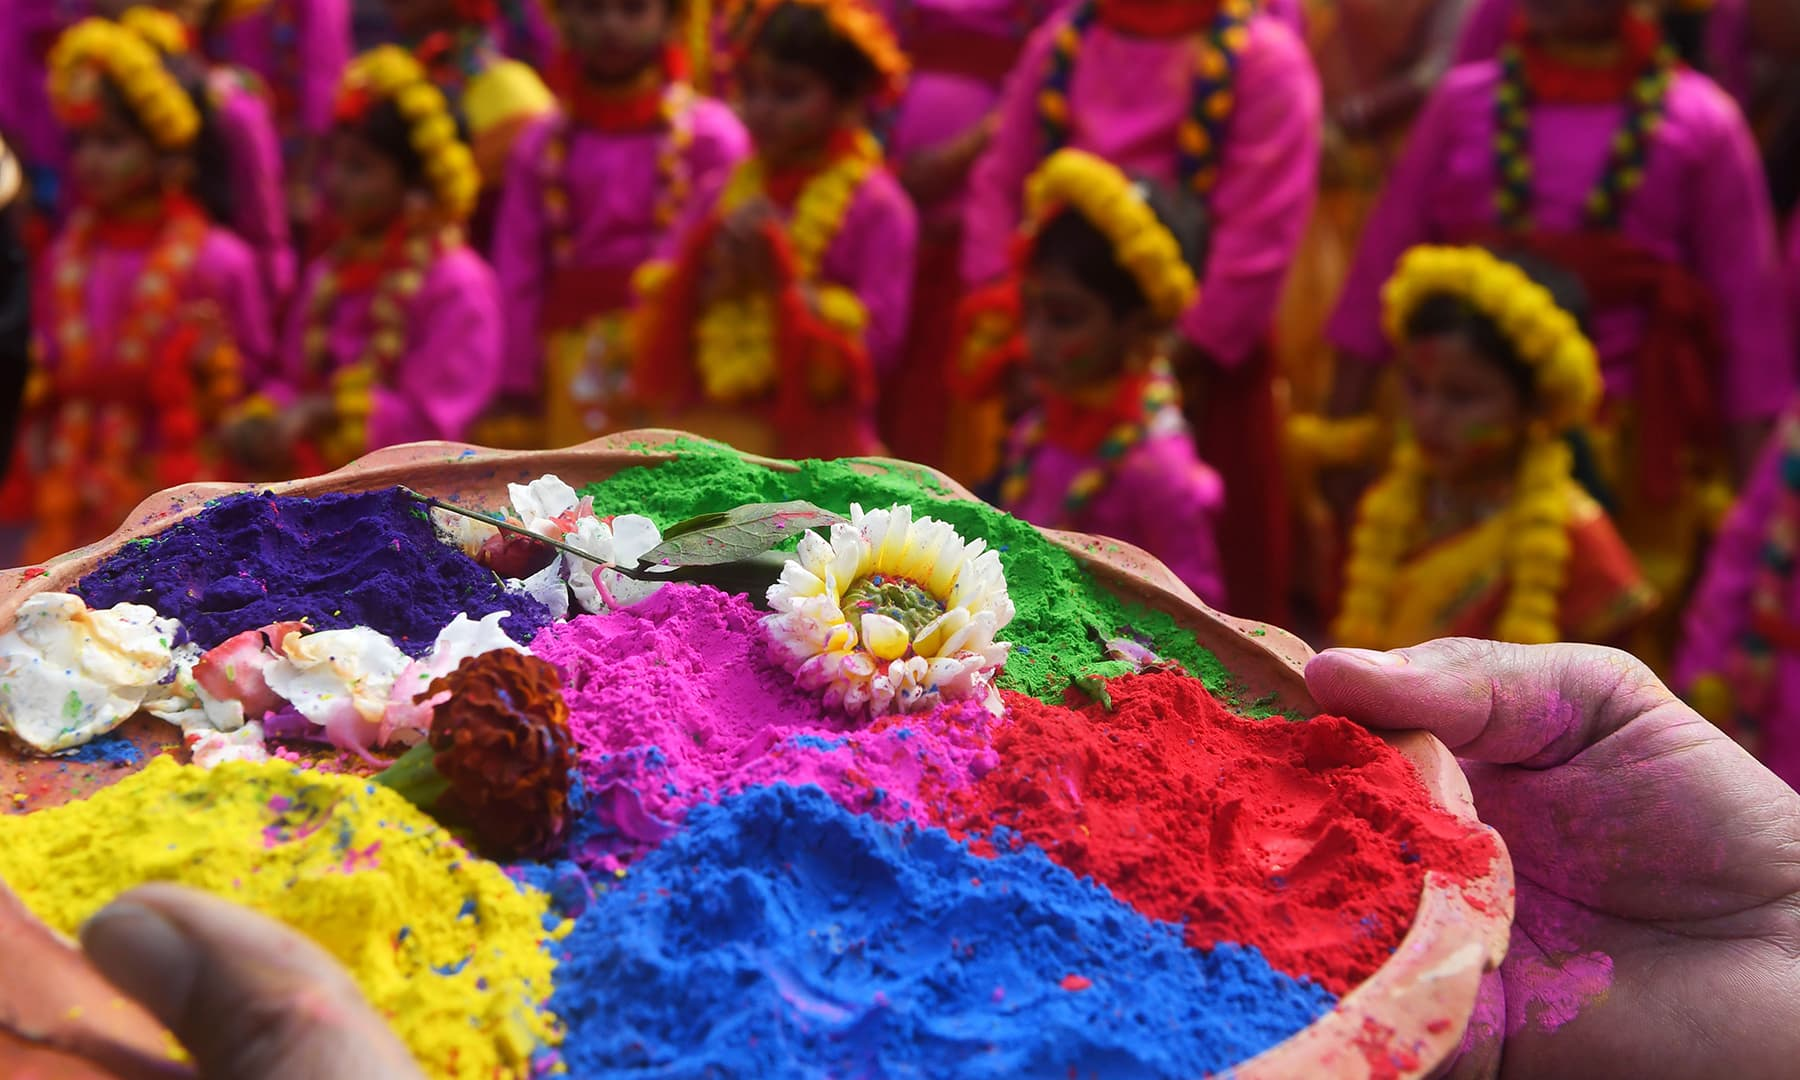 A participant holds a tray of coloured powder as students take part in a cultural procession to celebrate Holi, the spring festival of colours, in Kolkata, India on March 9. — AFP